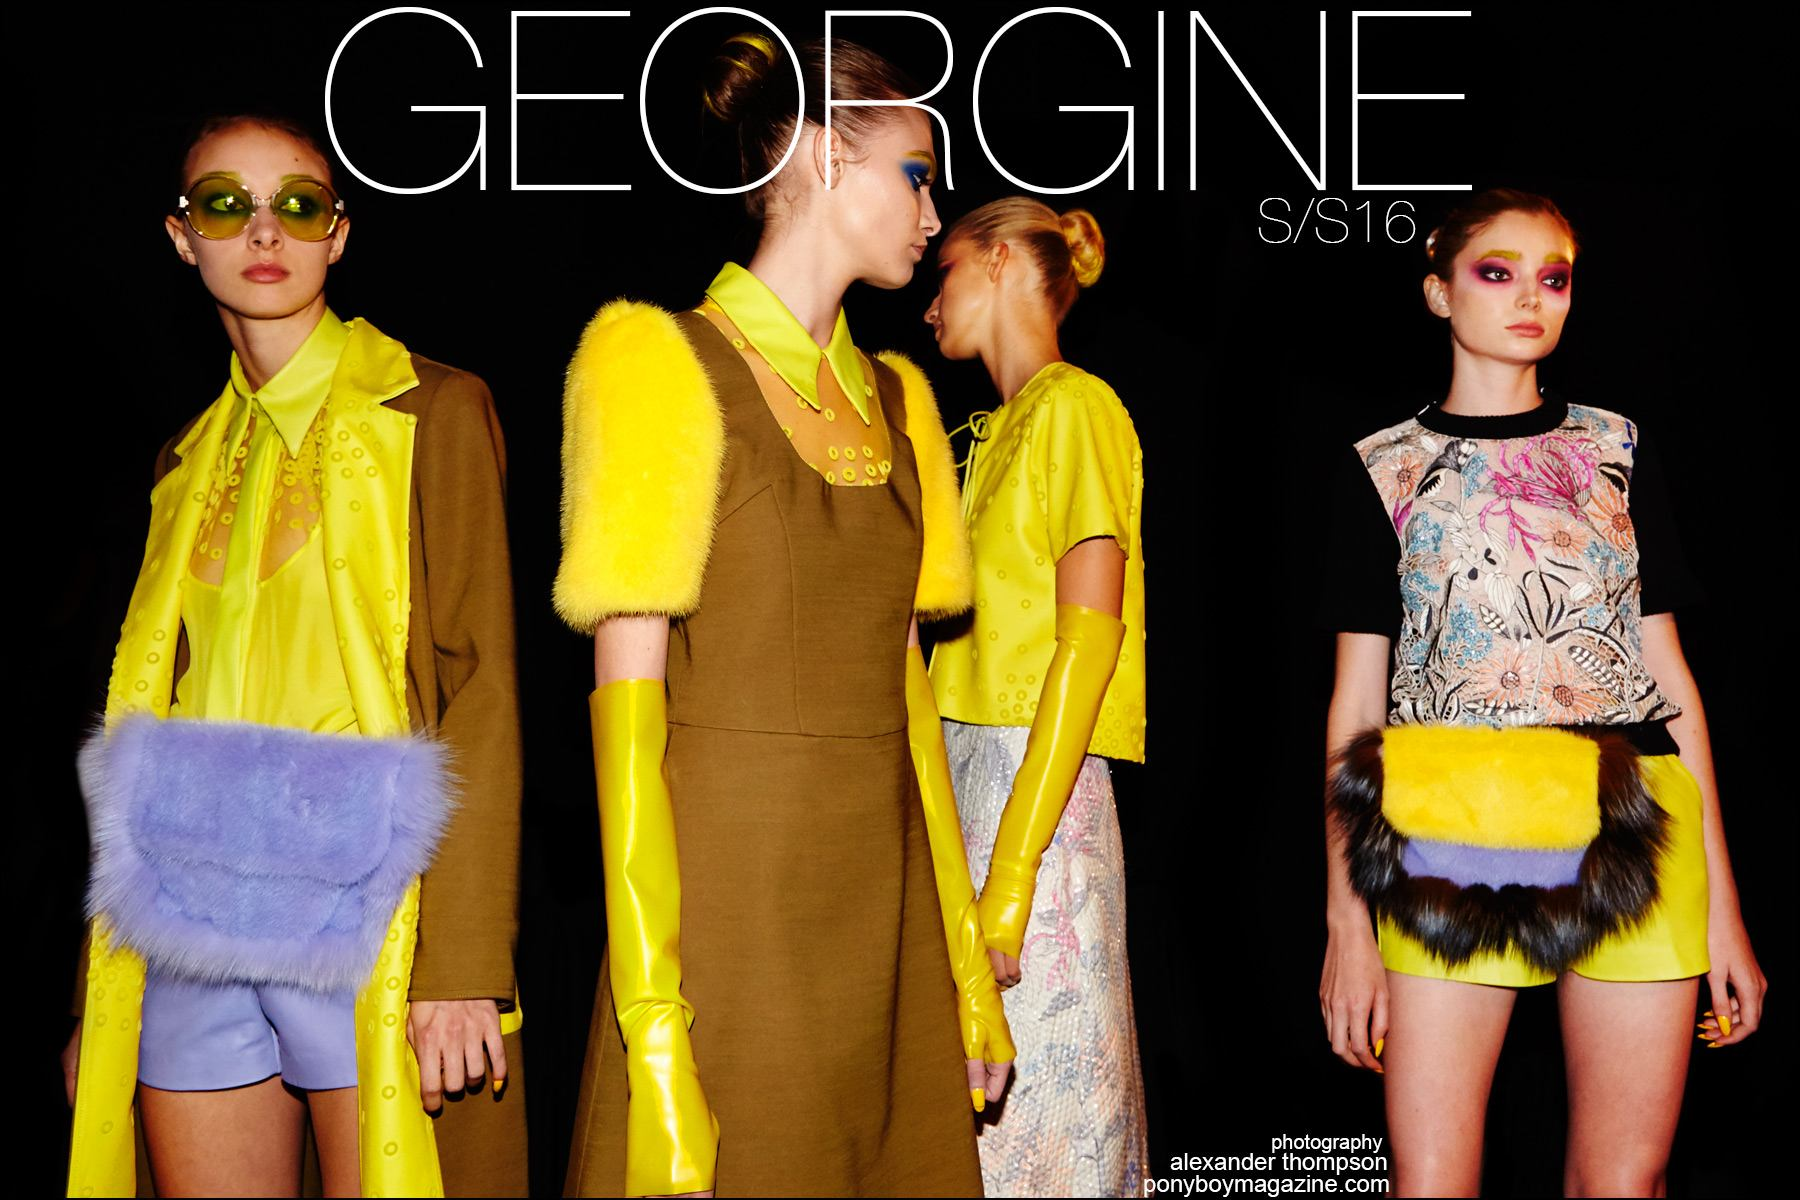 The Georgine Spring/Summer 2016 womenswear collection. Photography by Alexander Thompson for Ponyboy magazine NY.